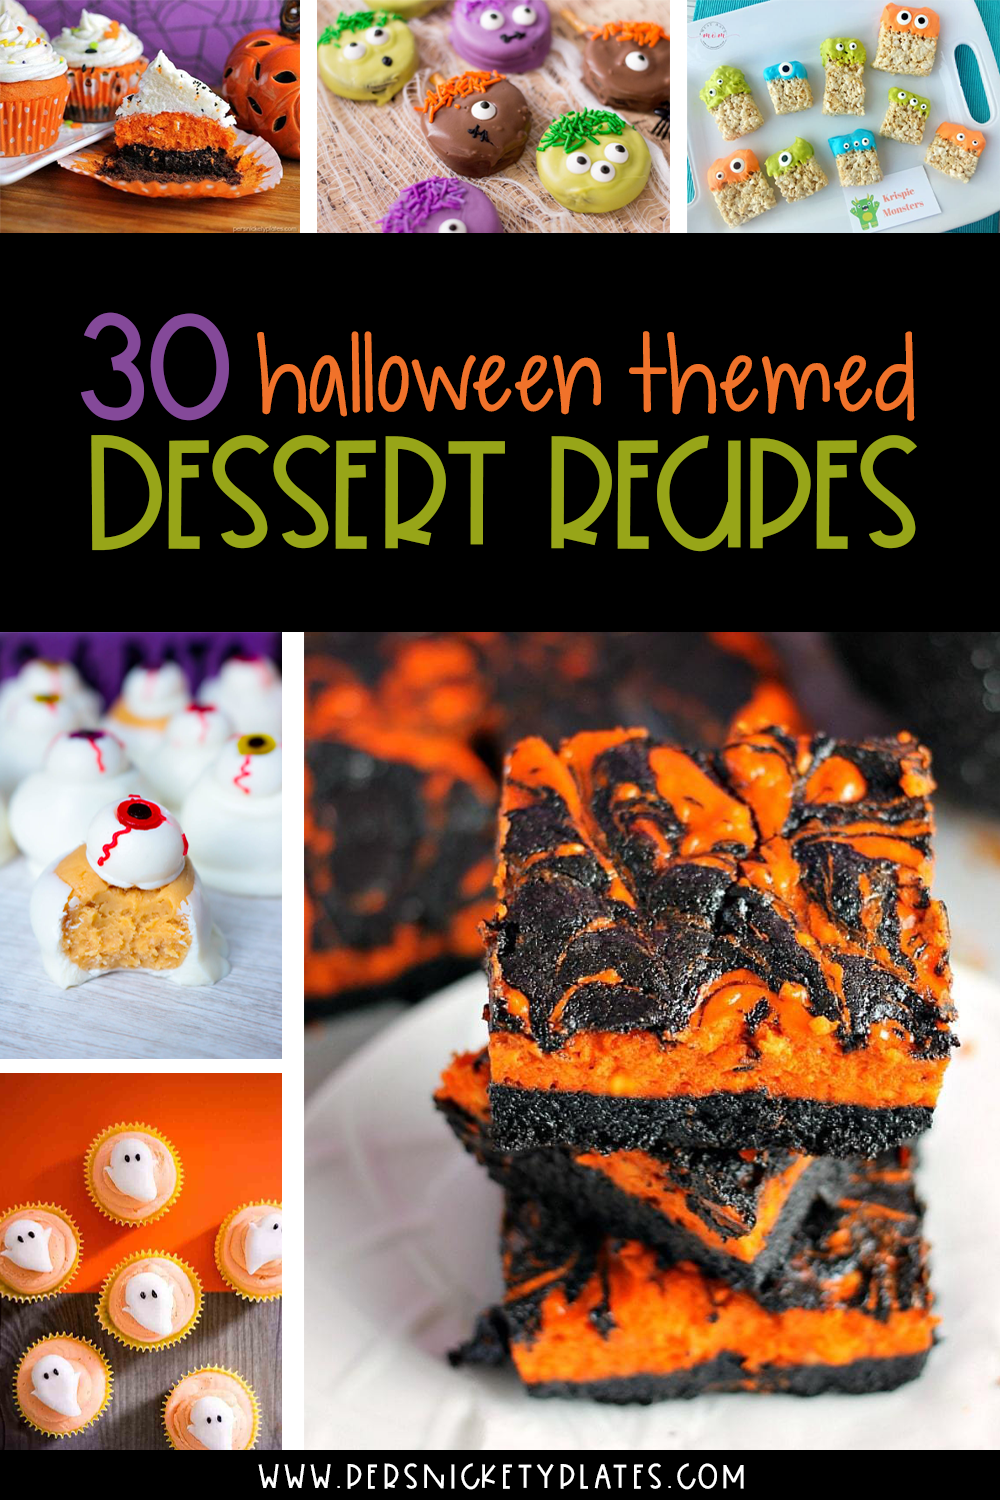 Halloween and desserts are two of my favorite things so I am excited to share THIRTY Halloween dessert recipes with you today! They are so fun, spooky, and most importantly: delicious. These easy Halloween dessert ideas will be the hit of every party! | www.persnicketyplates.com #halloween #halloweenrecipes #halloweendesserts #desserts #easyrecipes